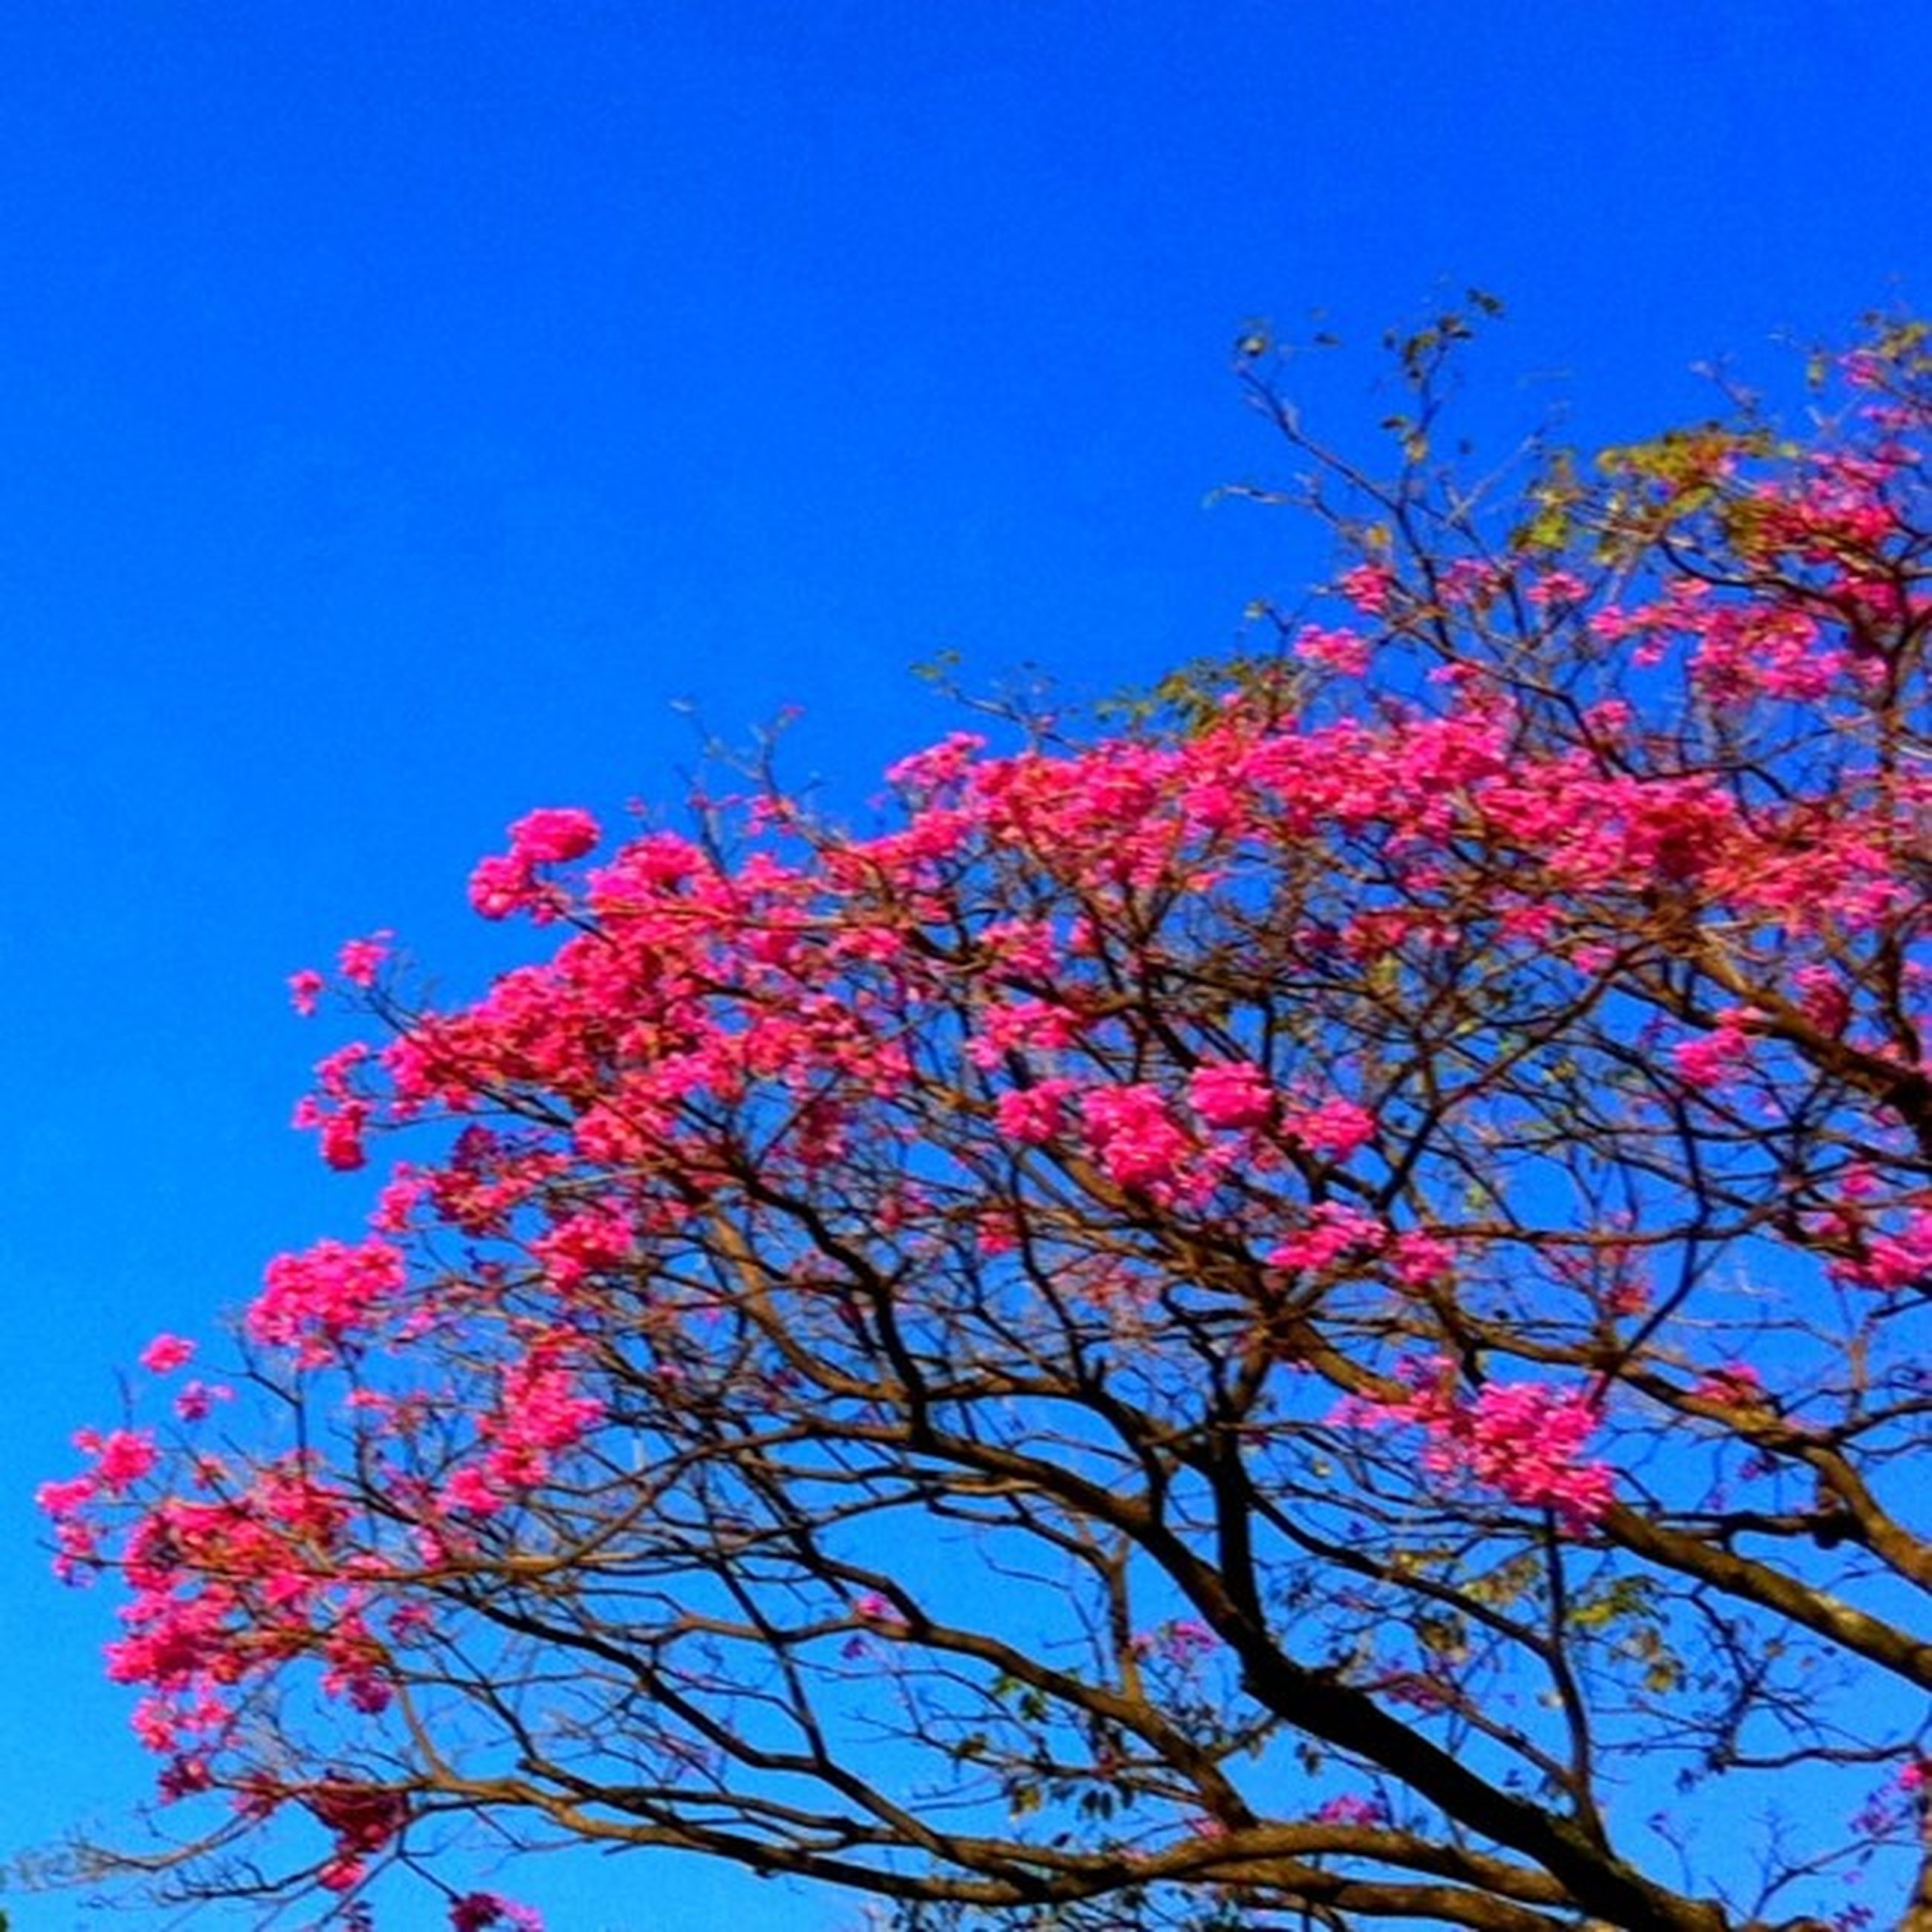 clear sky, low angle view, blue, flower, tree, growth, branch, beauty in nature, freshness, nature, fragility, copy space, pink color, sky, blossom, red, blooming, day, outdoors, in bloom